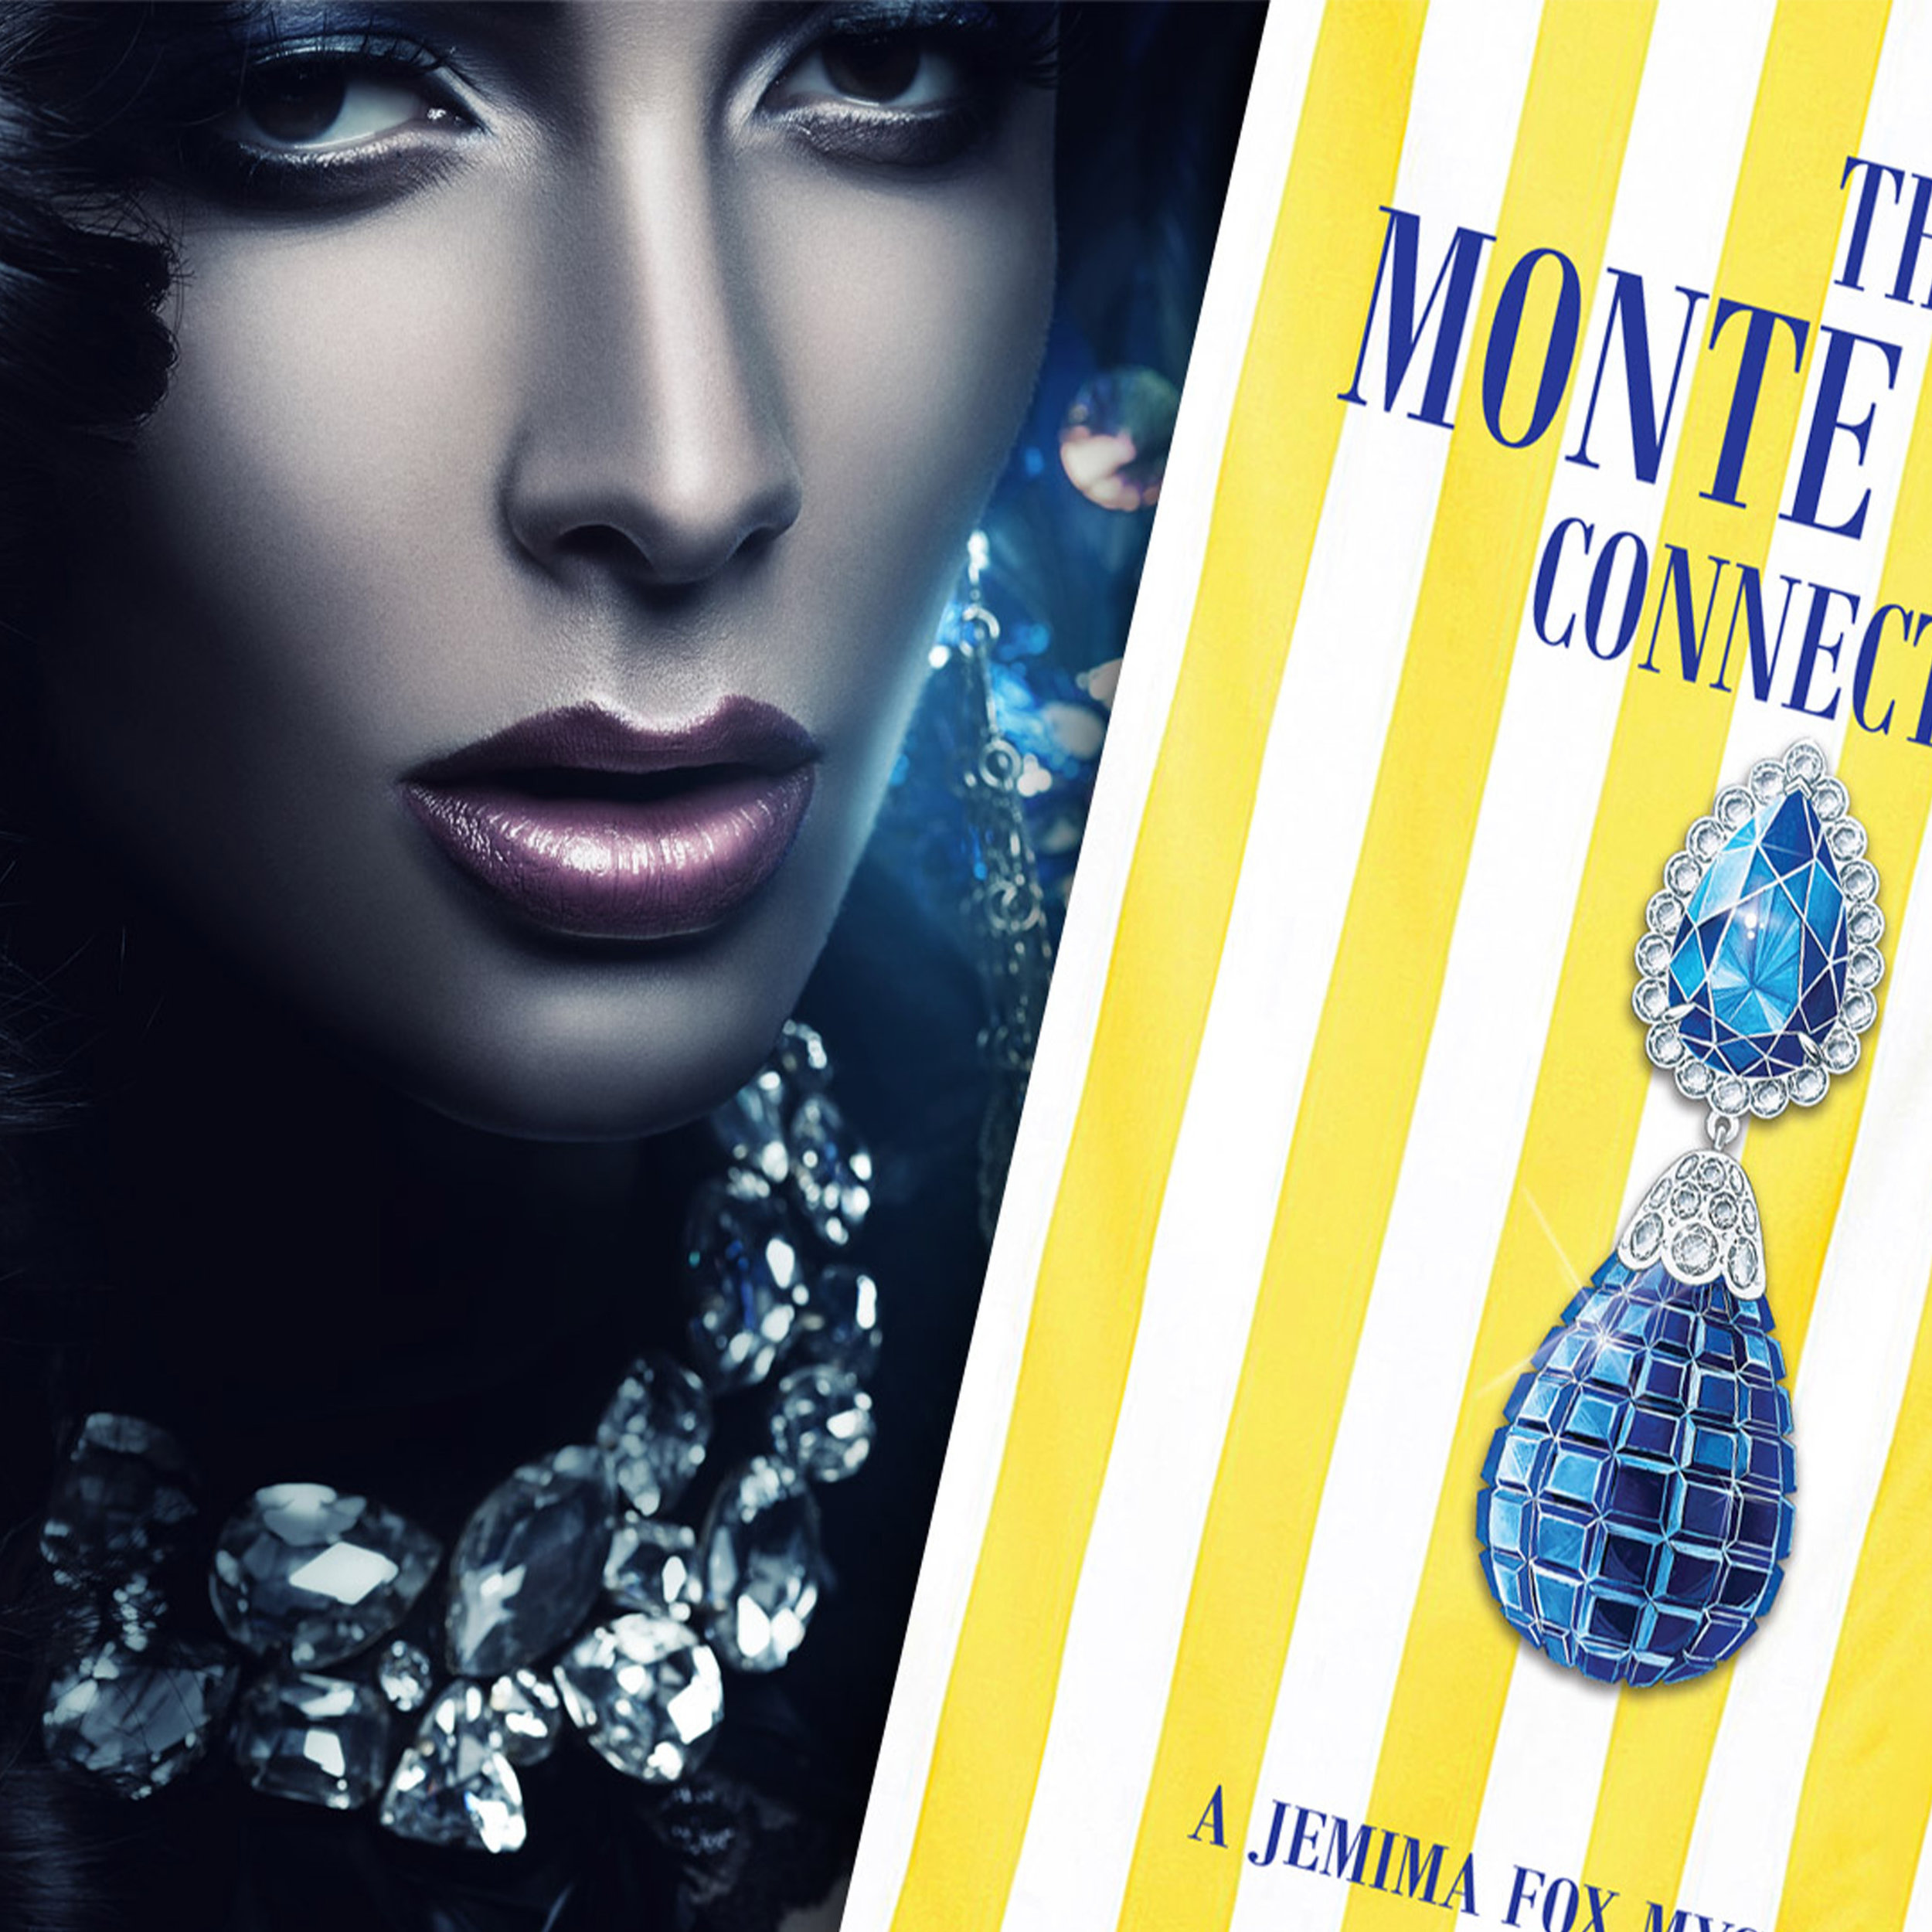 The Monte Carlo Connection: Volume Three in the 'Jemima Fox Mystery' Series - In the summer of 2009, Josie Goodbody was sitting at her desk in Mayfair, as the head of PR for the most luxurious jewellery in the world - Graff Diamonds. Suddenly she heard gunshots from outside, only to discover that two masked thieves had just escaped with £40m of the world's finest jewellery from Graff's boutique on Bond Street.